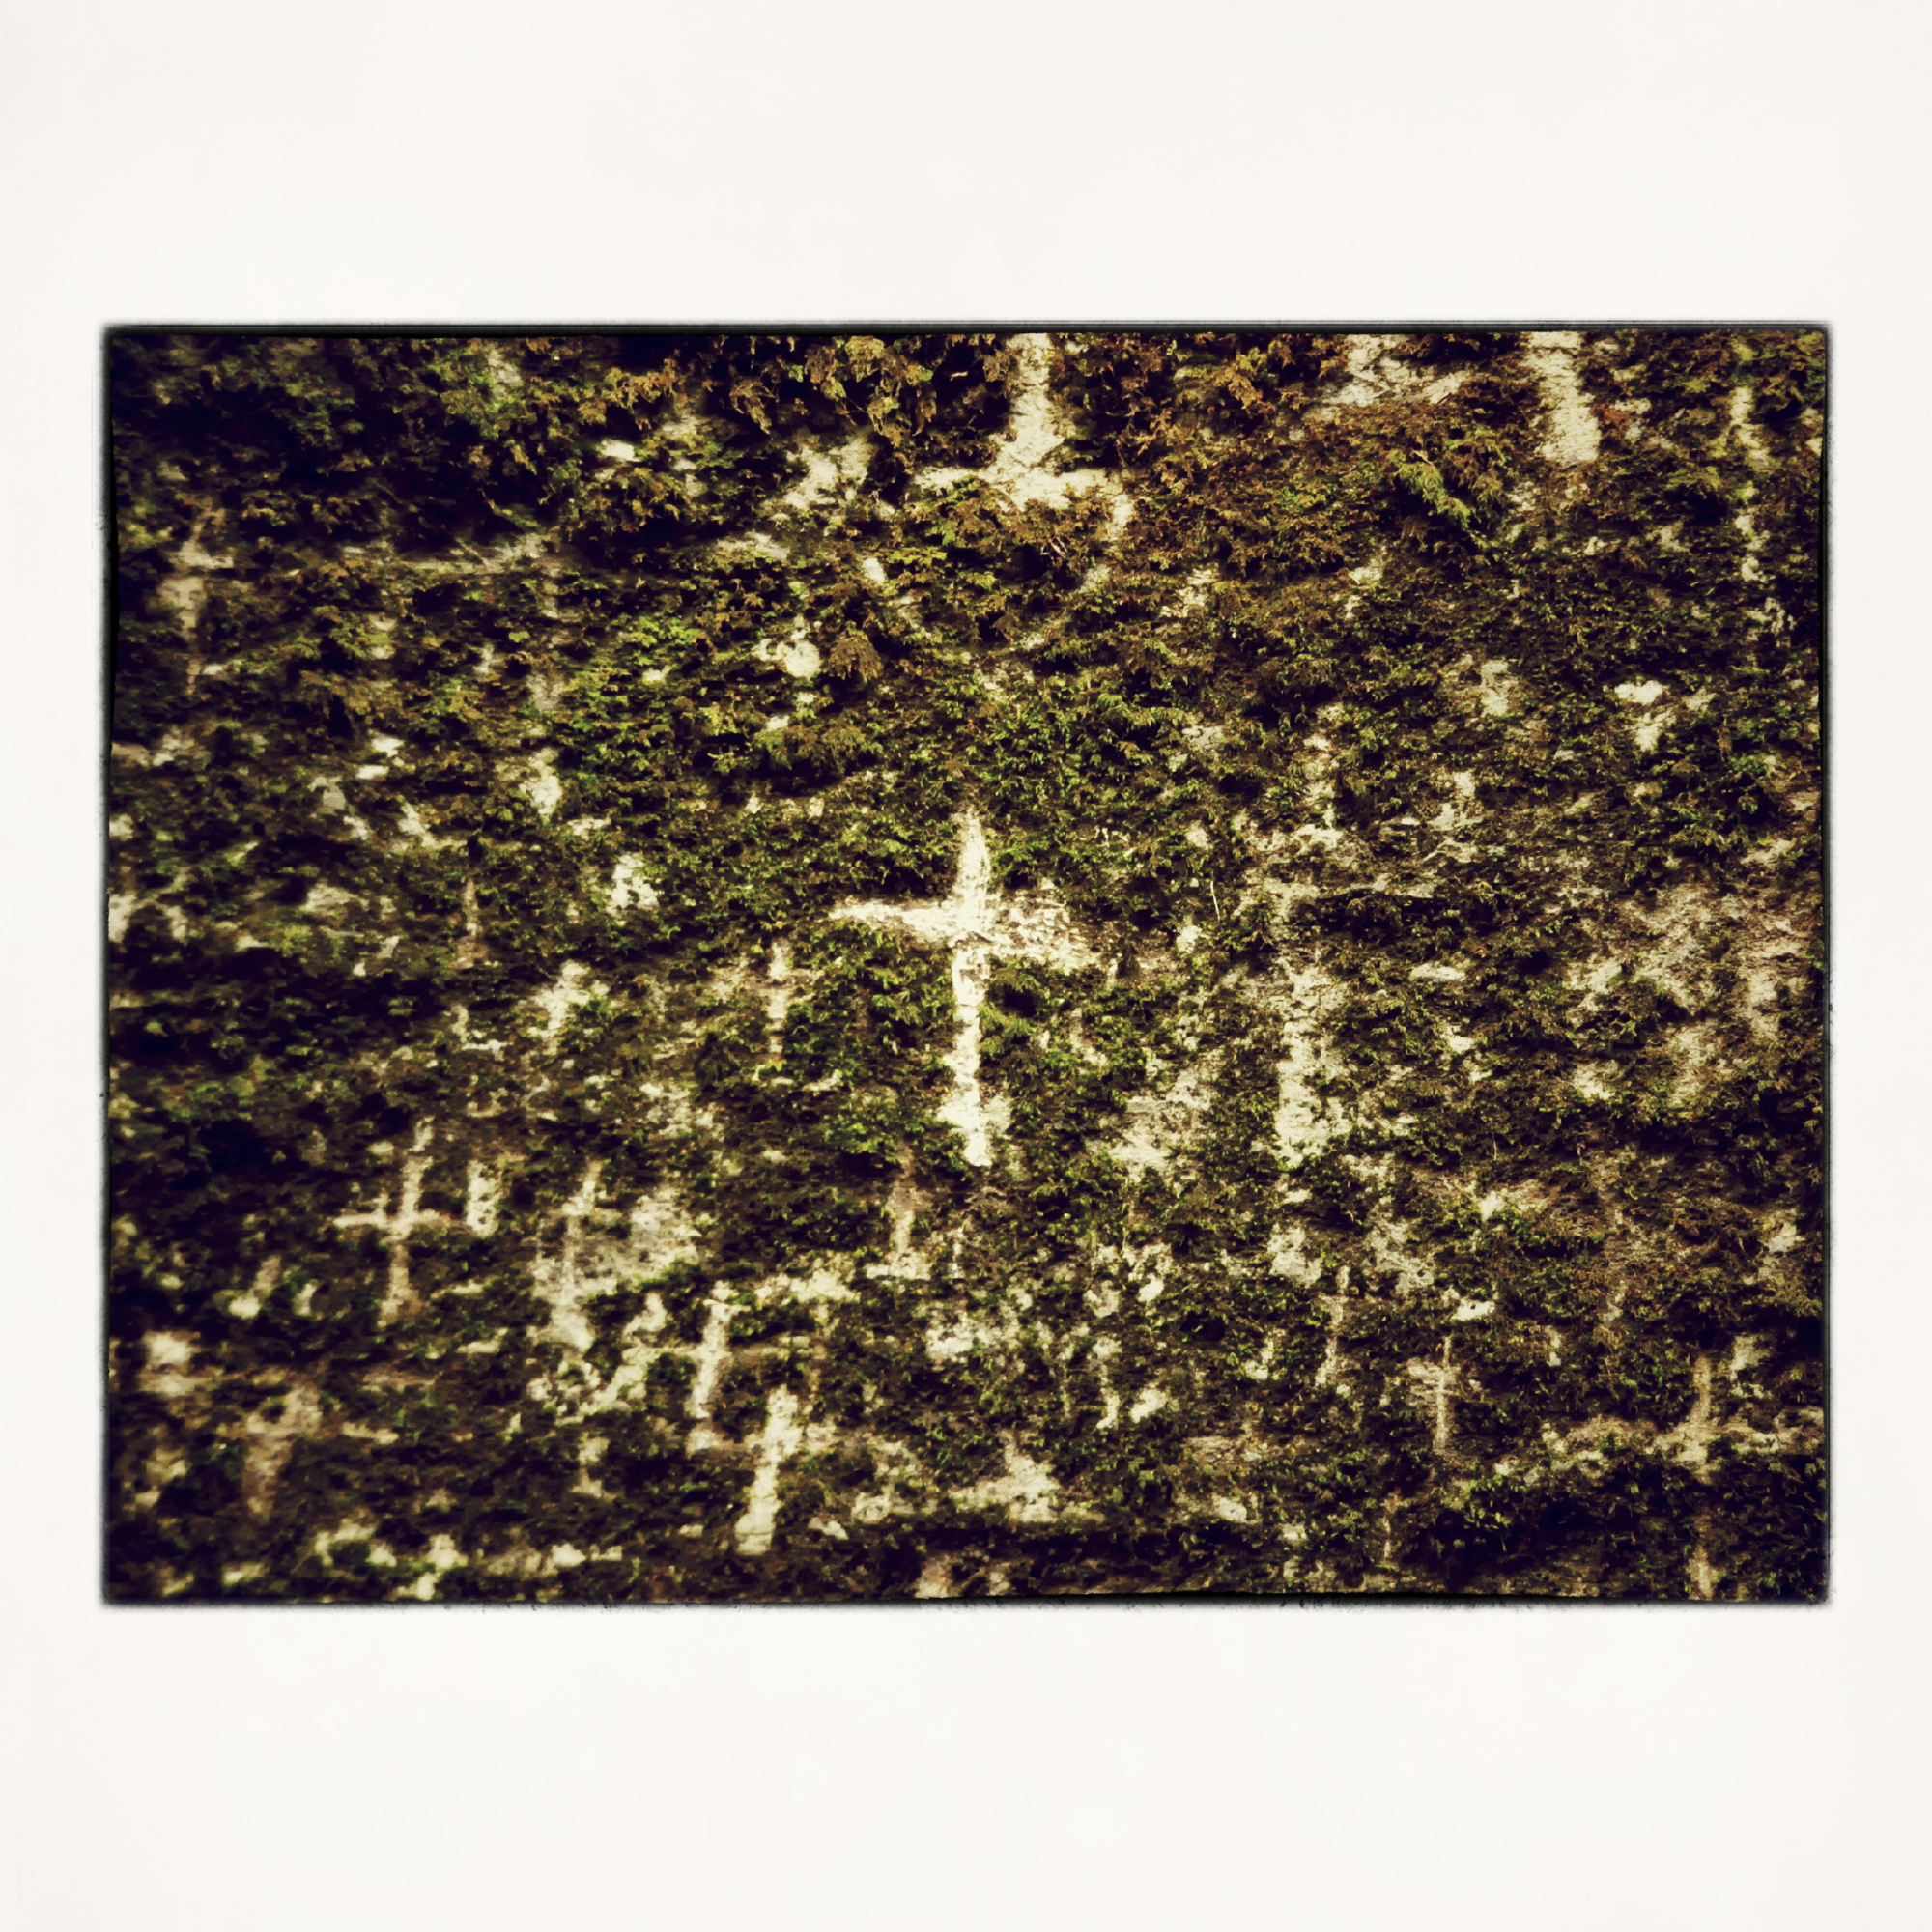 20x20 Crosses on the wall of moss